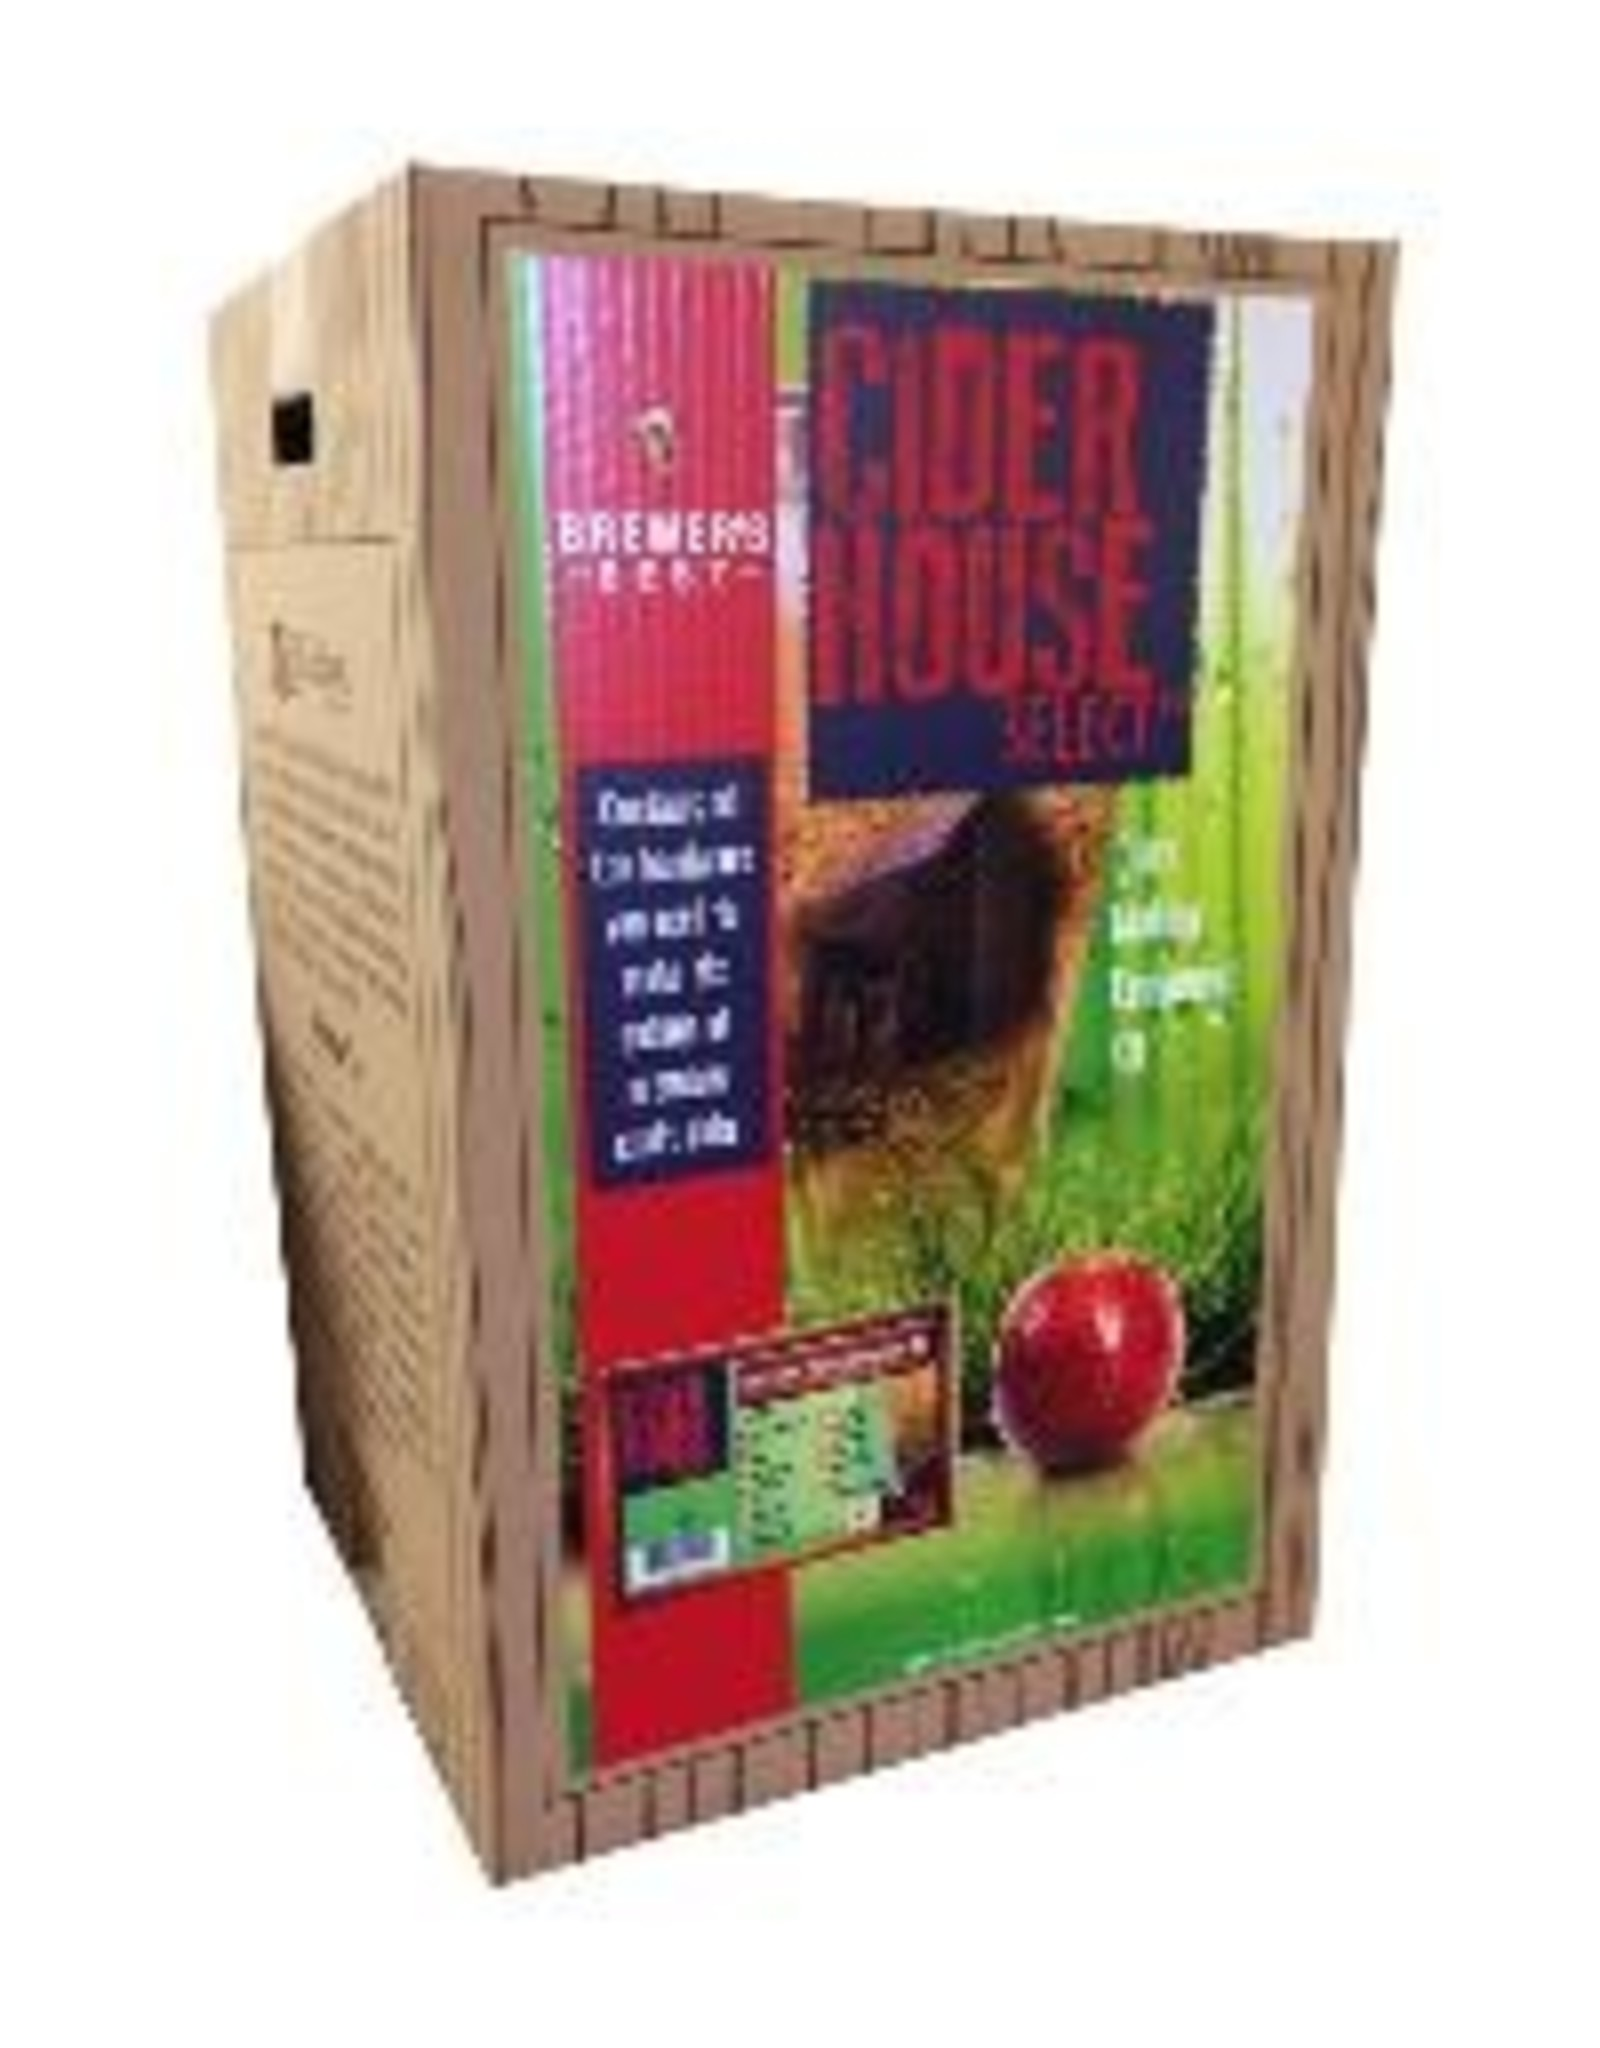 BREWERS BEST CIDER HOUSE SELECT CIDER EQUIPMENT KIT